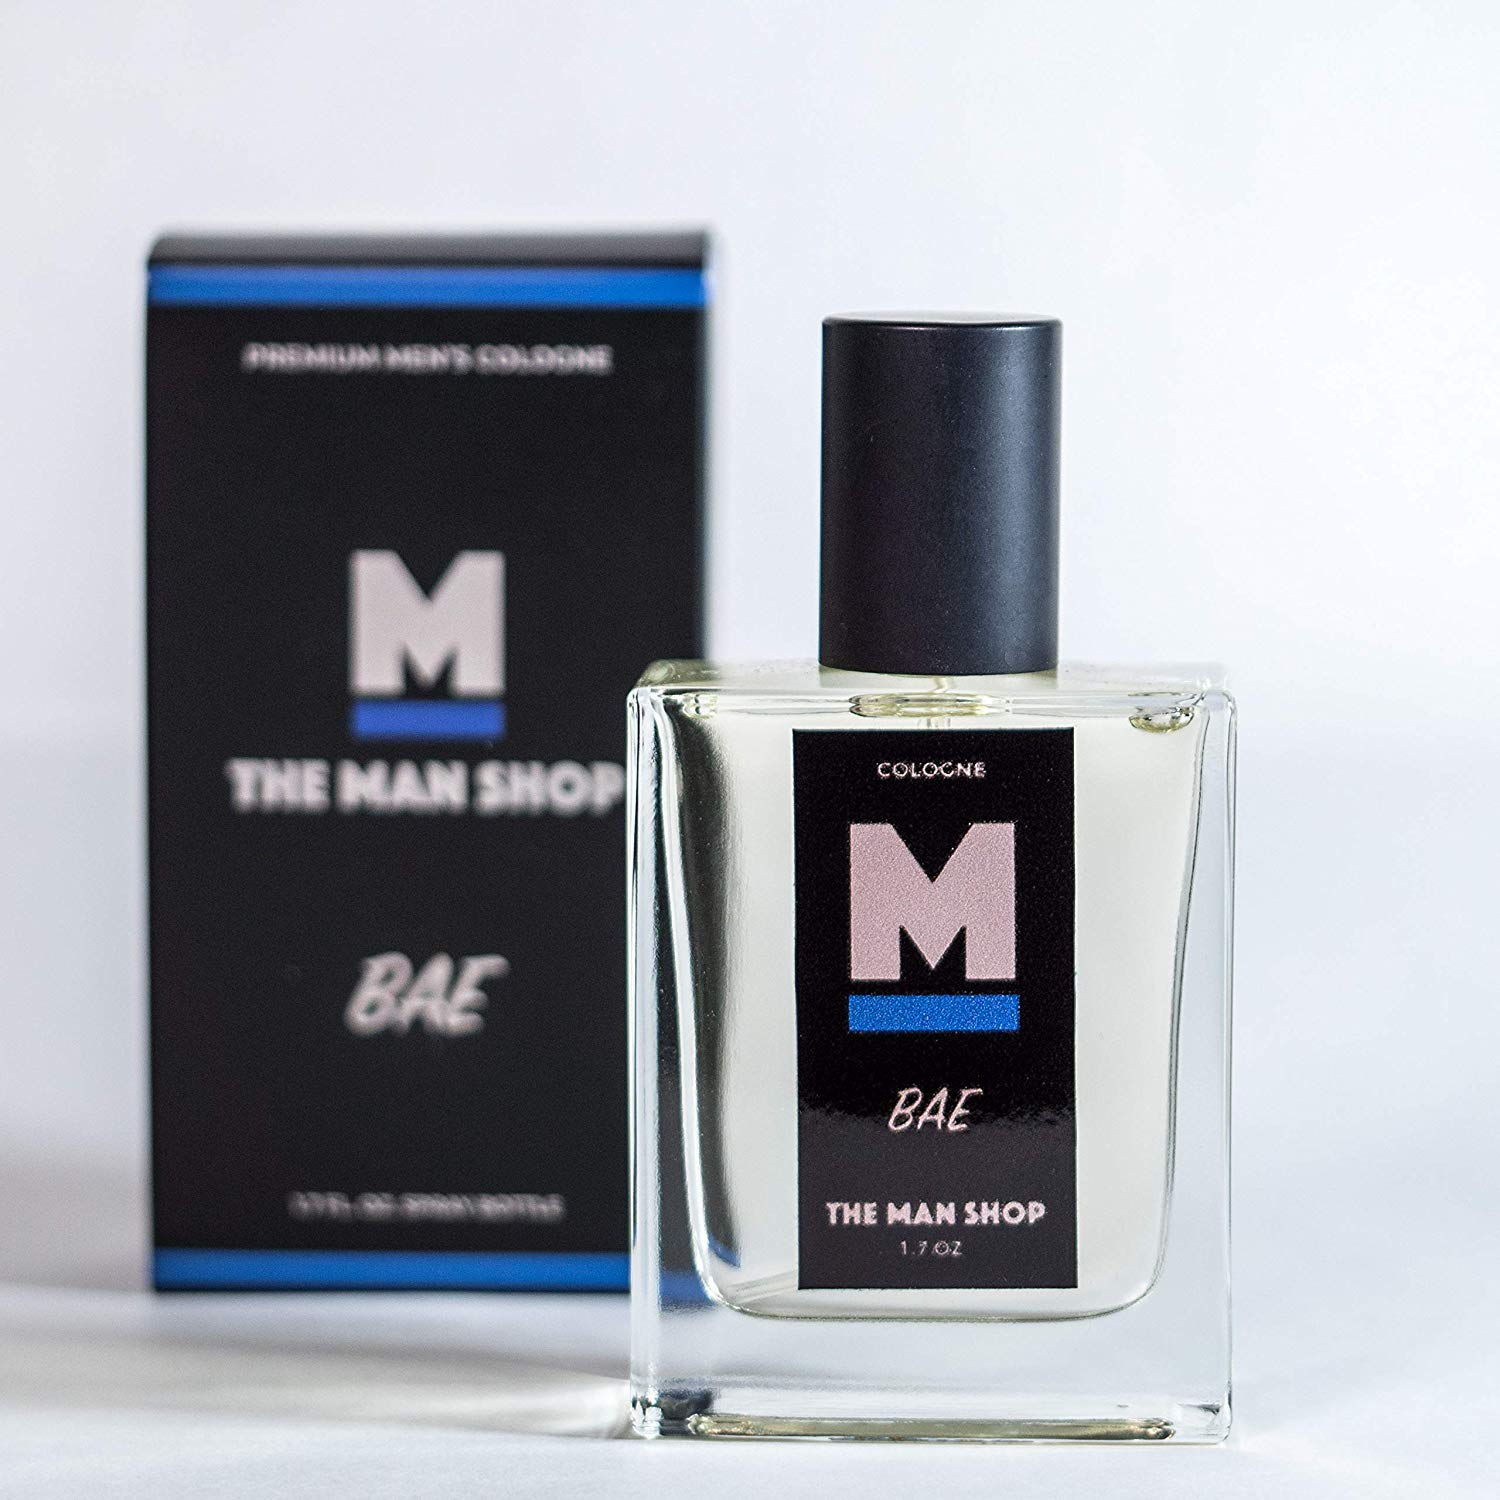 The Man Shop Bae Cologne. The Bae cologne is a modern version of the classic Bay Rum scents. With notes of Bay Rum, Sandalwood, Basil, Mint, and Sage, it's a very masculine scent that will attract a Bae. 2020 Valentine's Day Gift Guide from Jays Sweet N Sour Life Blog.